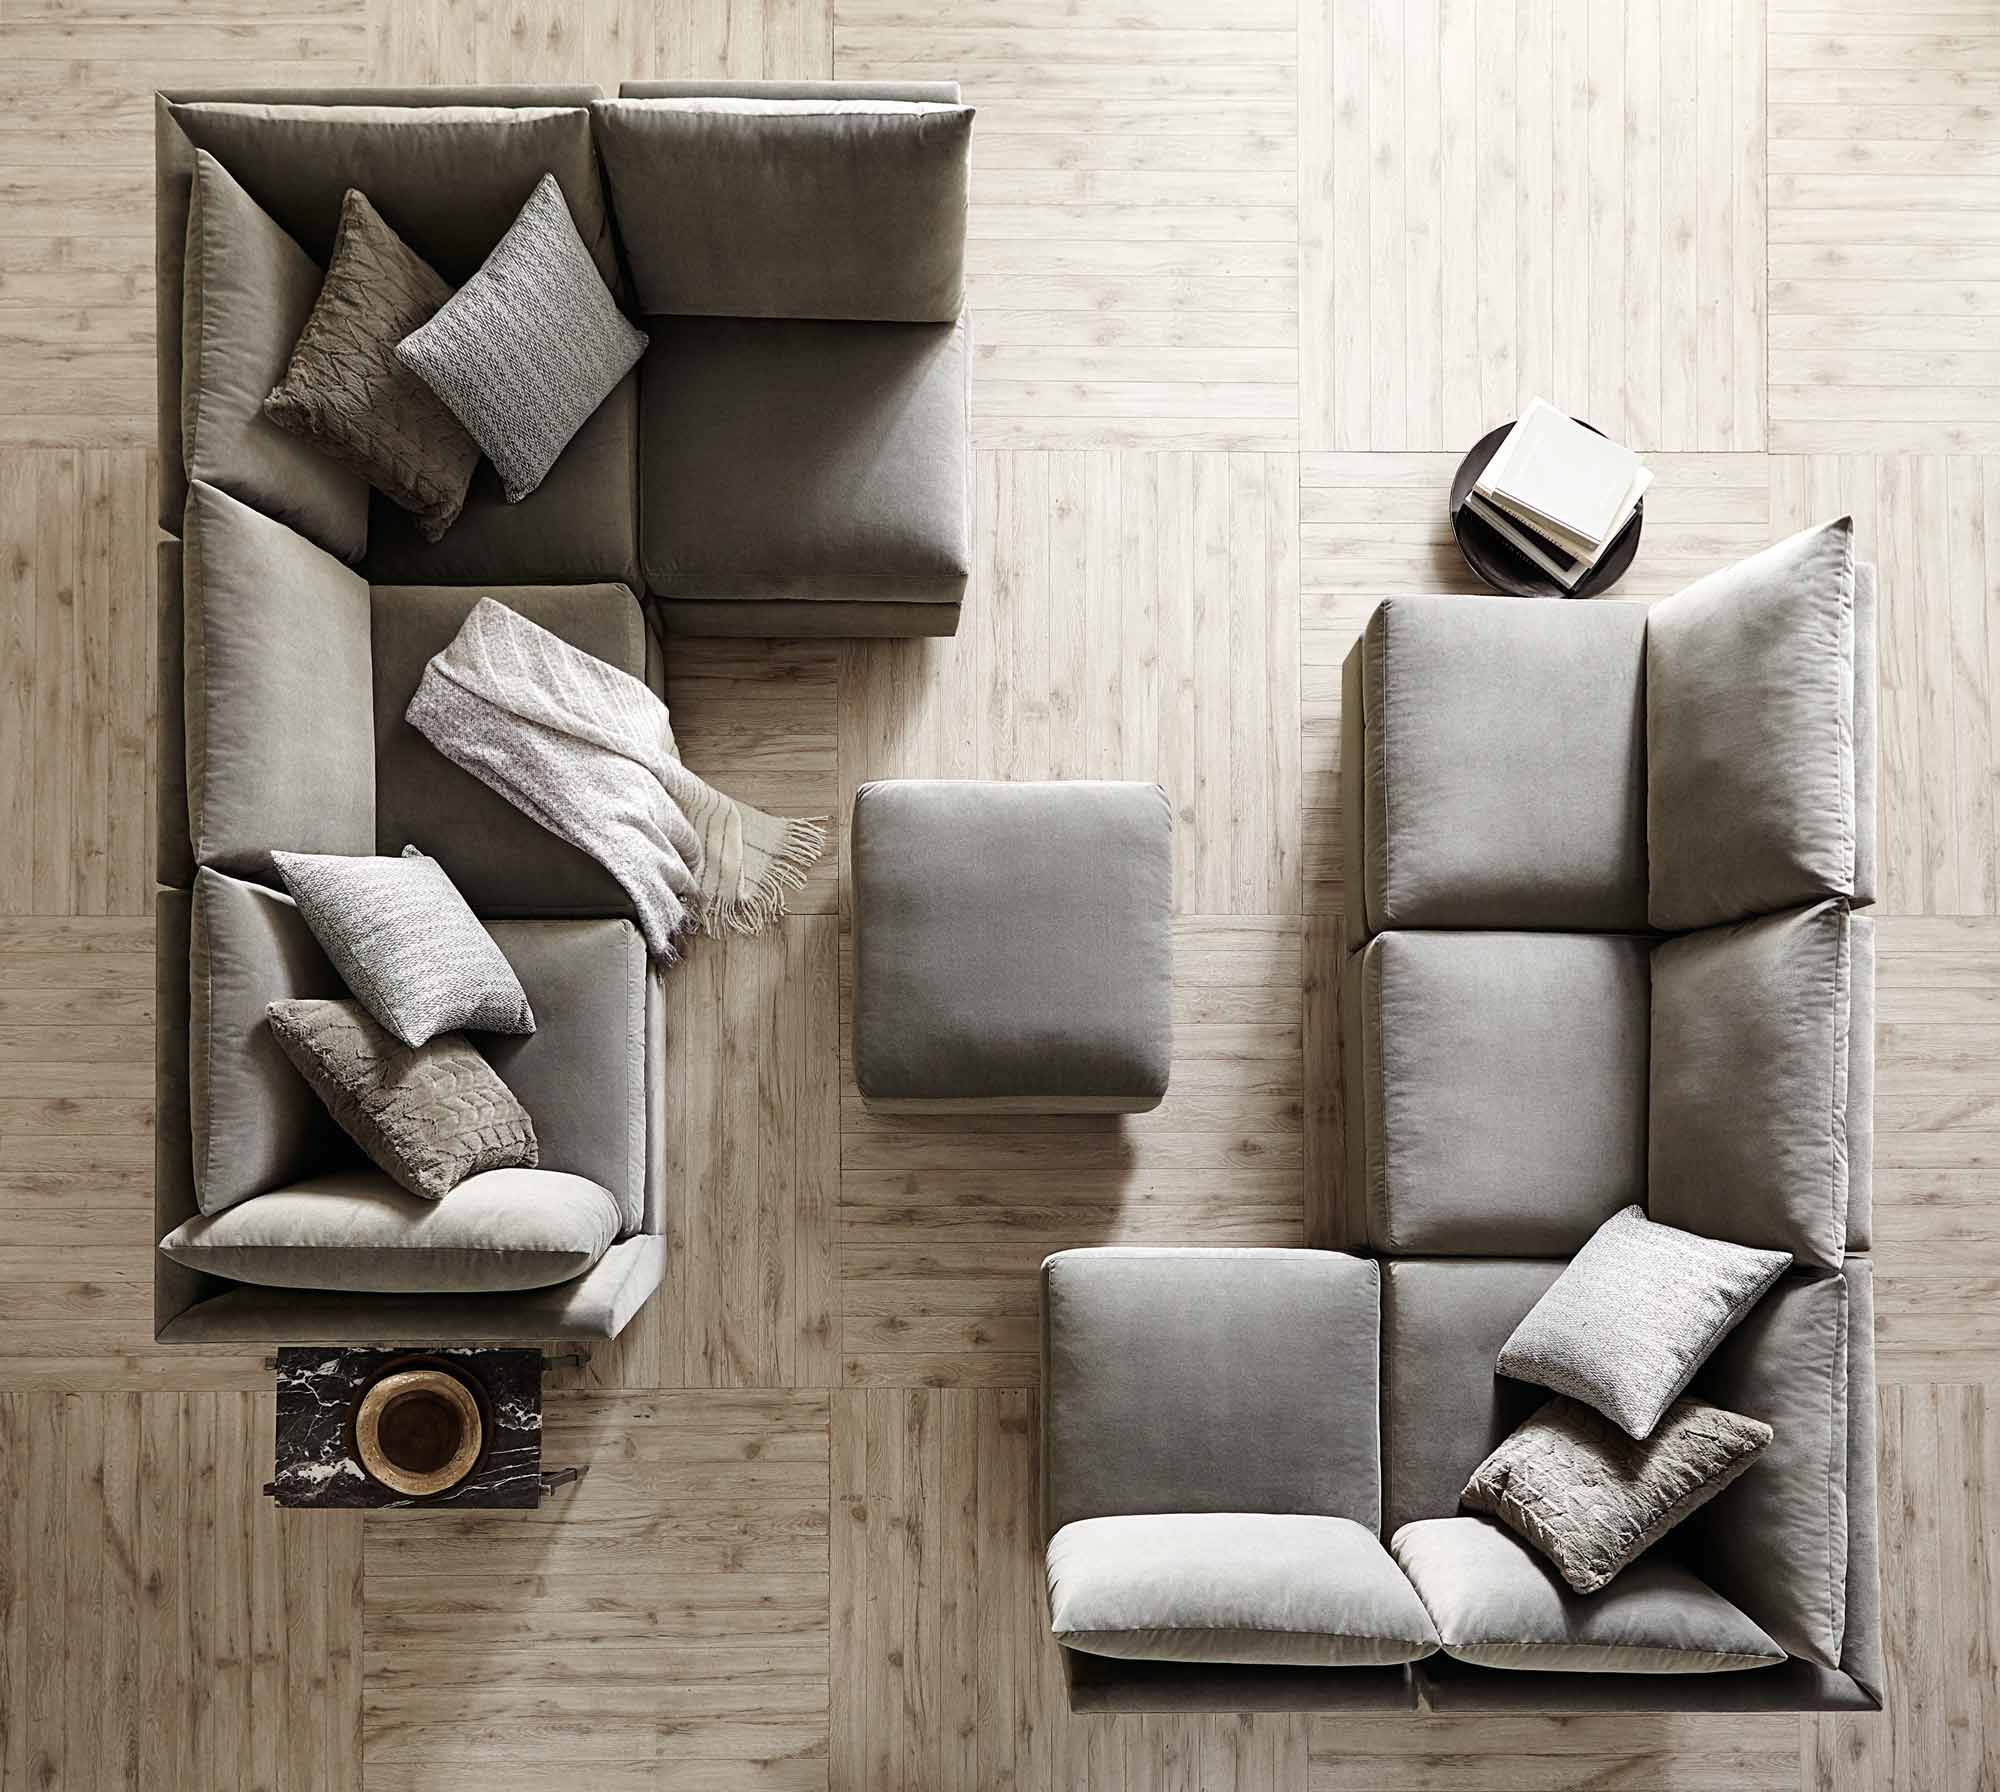 Plush the world's most comfortable sofa